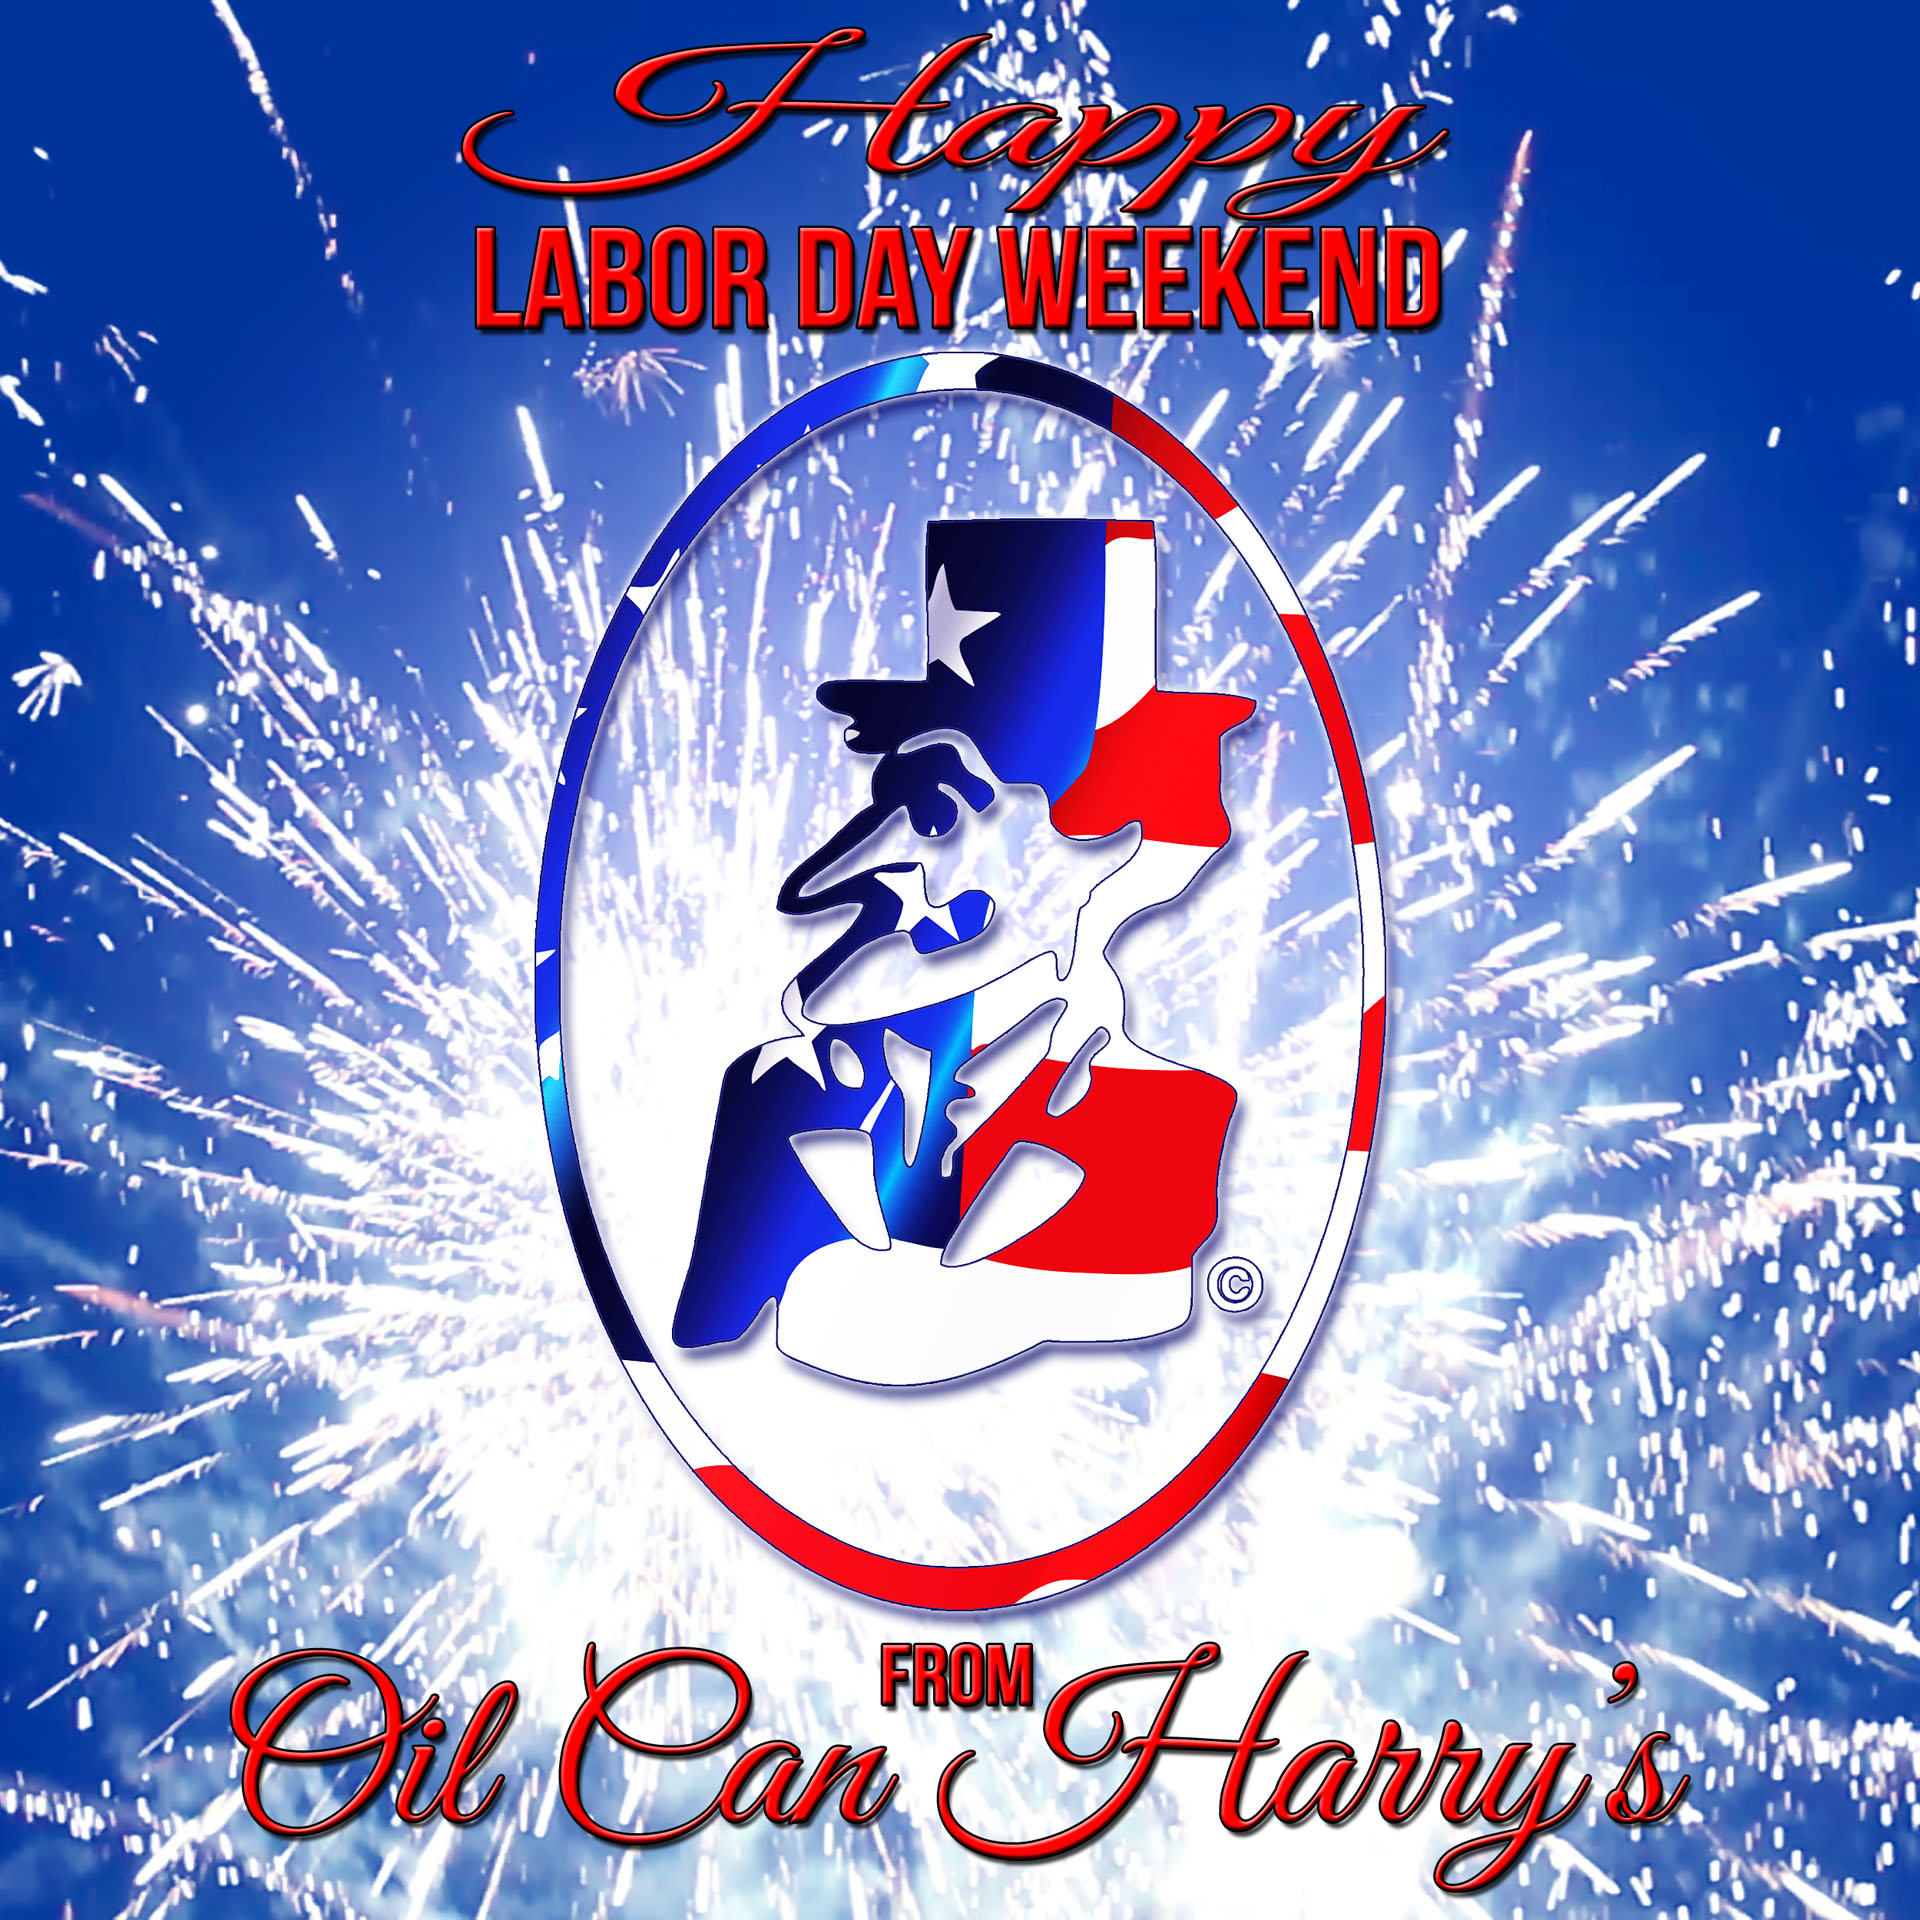 Have a Safe and Happy Labor Day Weekend from The Staff of Oil Can Harry's!